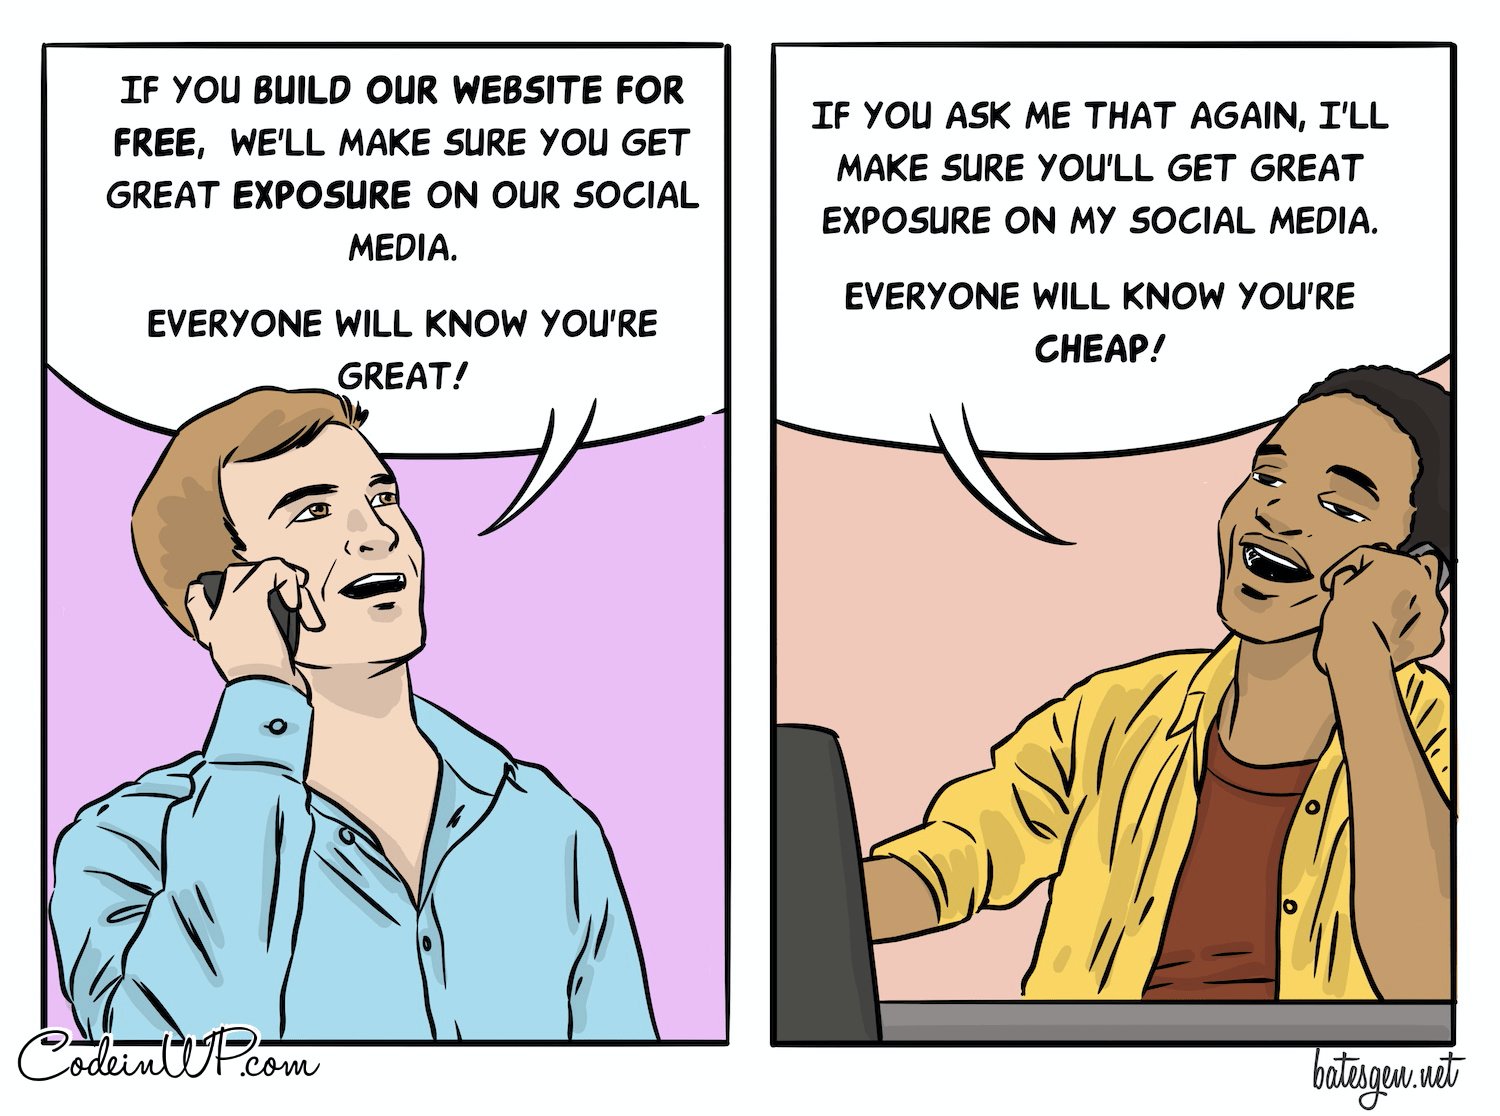 A joke about doing hours of work for exposure